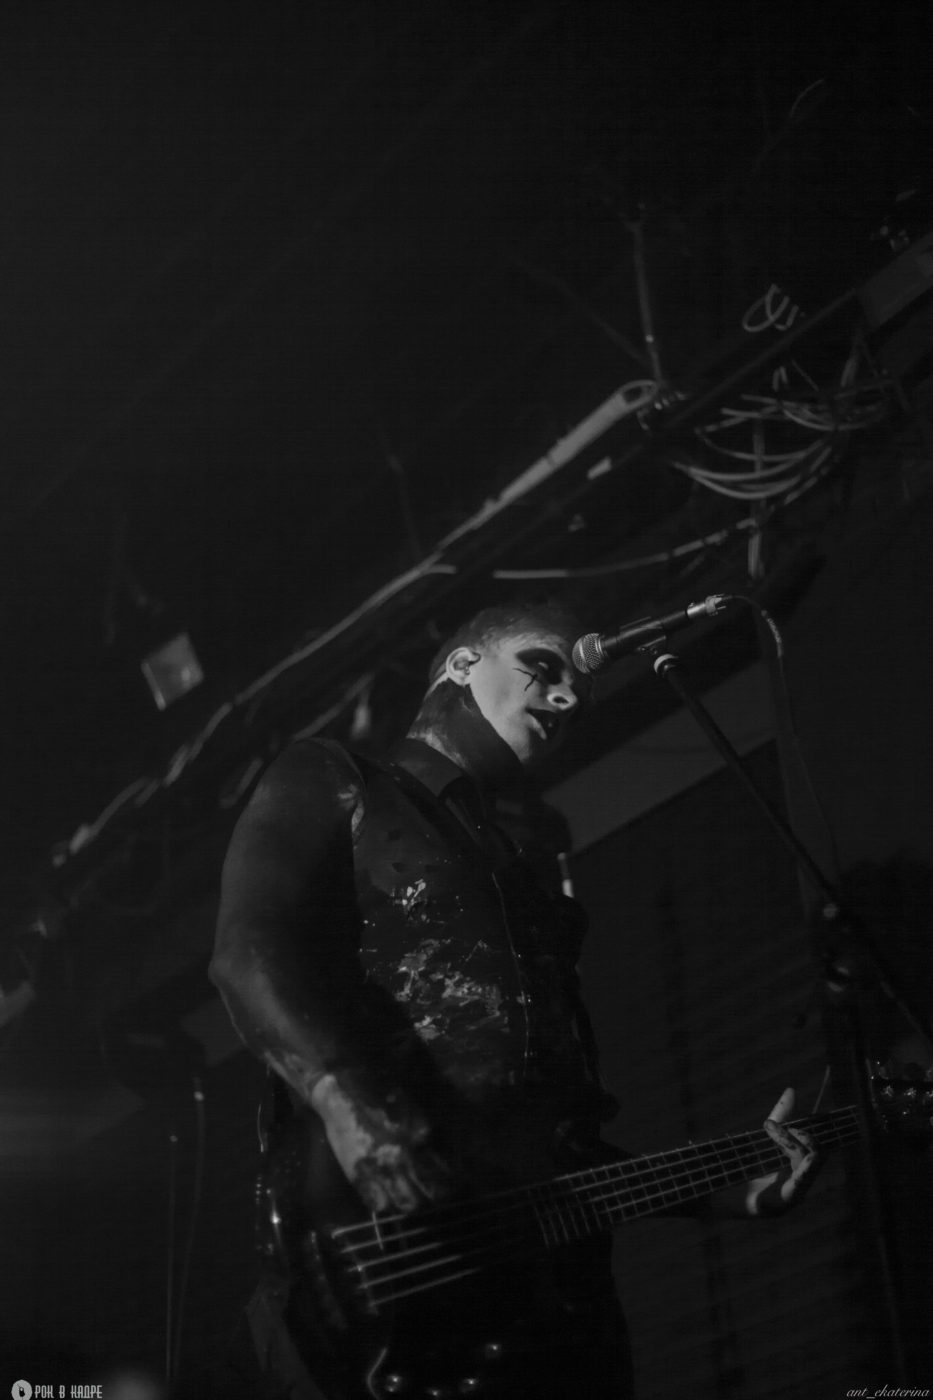 Motionless in white Санкт-Петербург 19.11.19